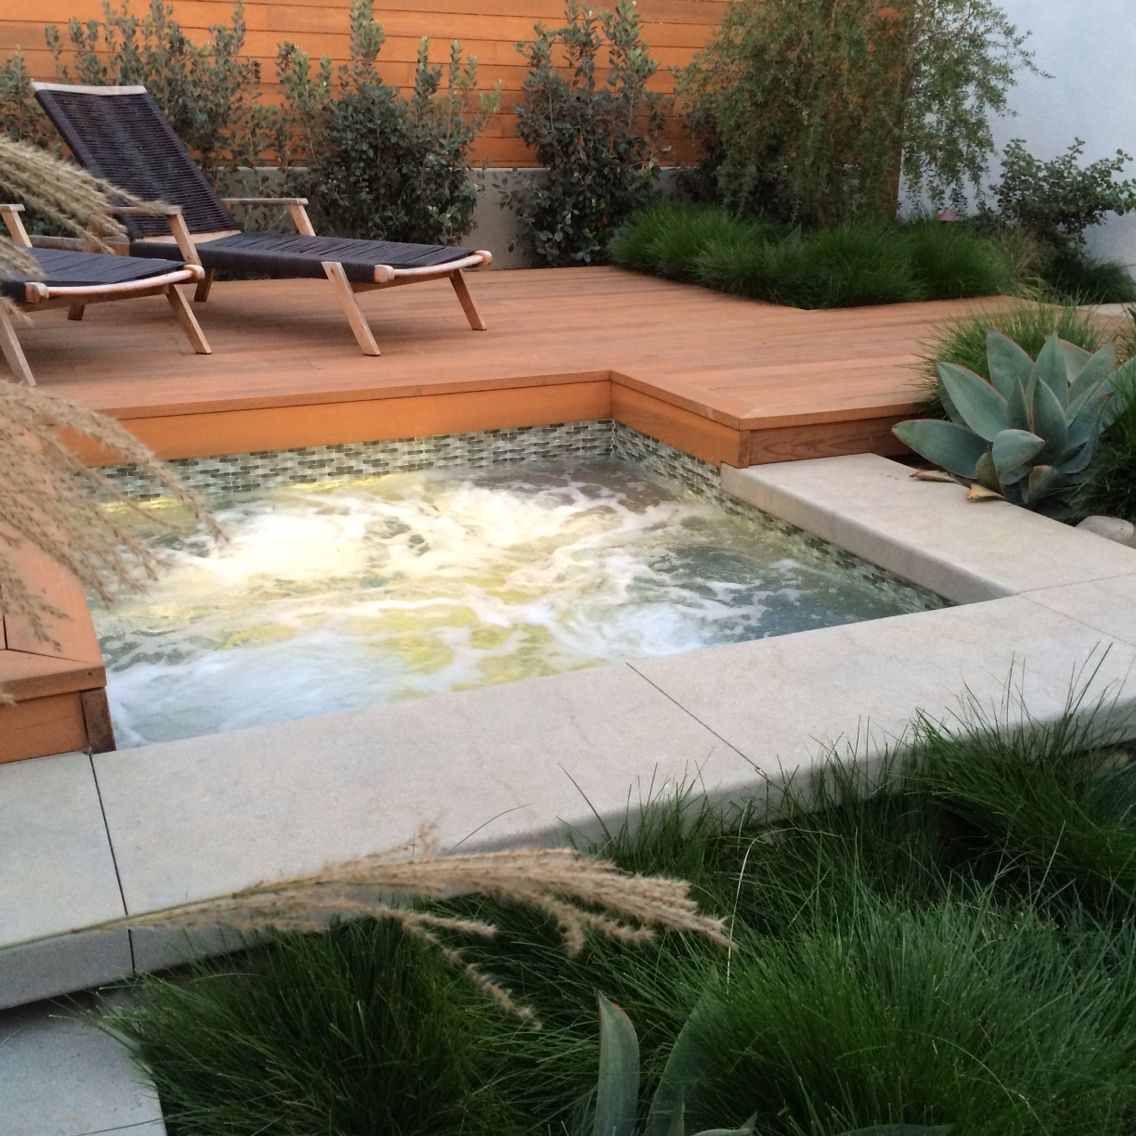 Spa And Deck Combo By Falling Waters Landscape Www